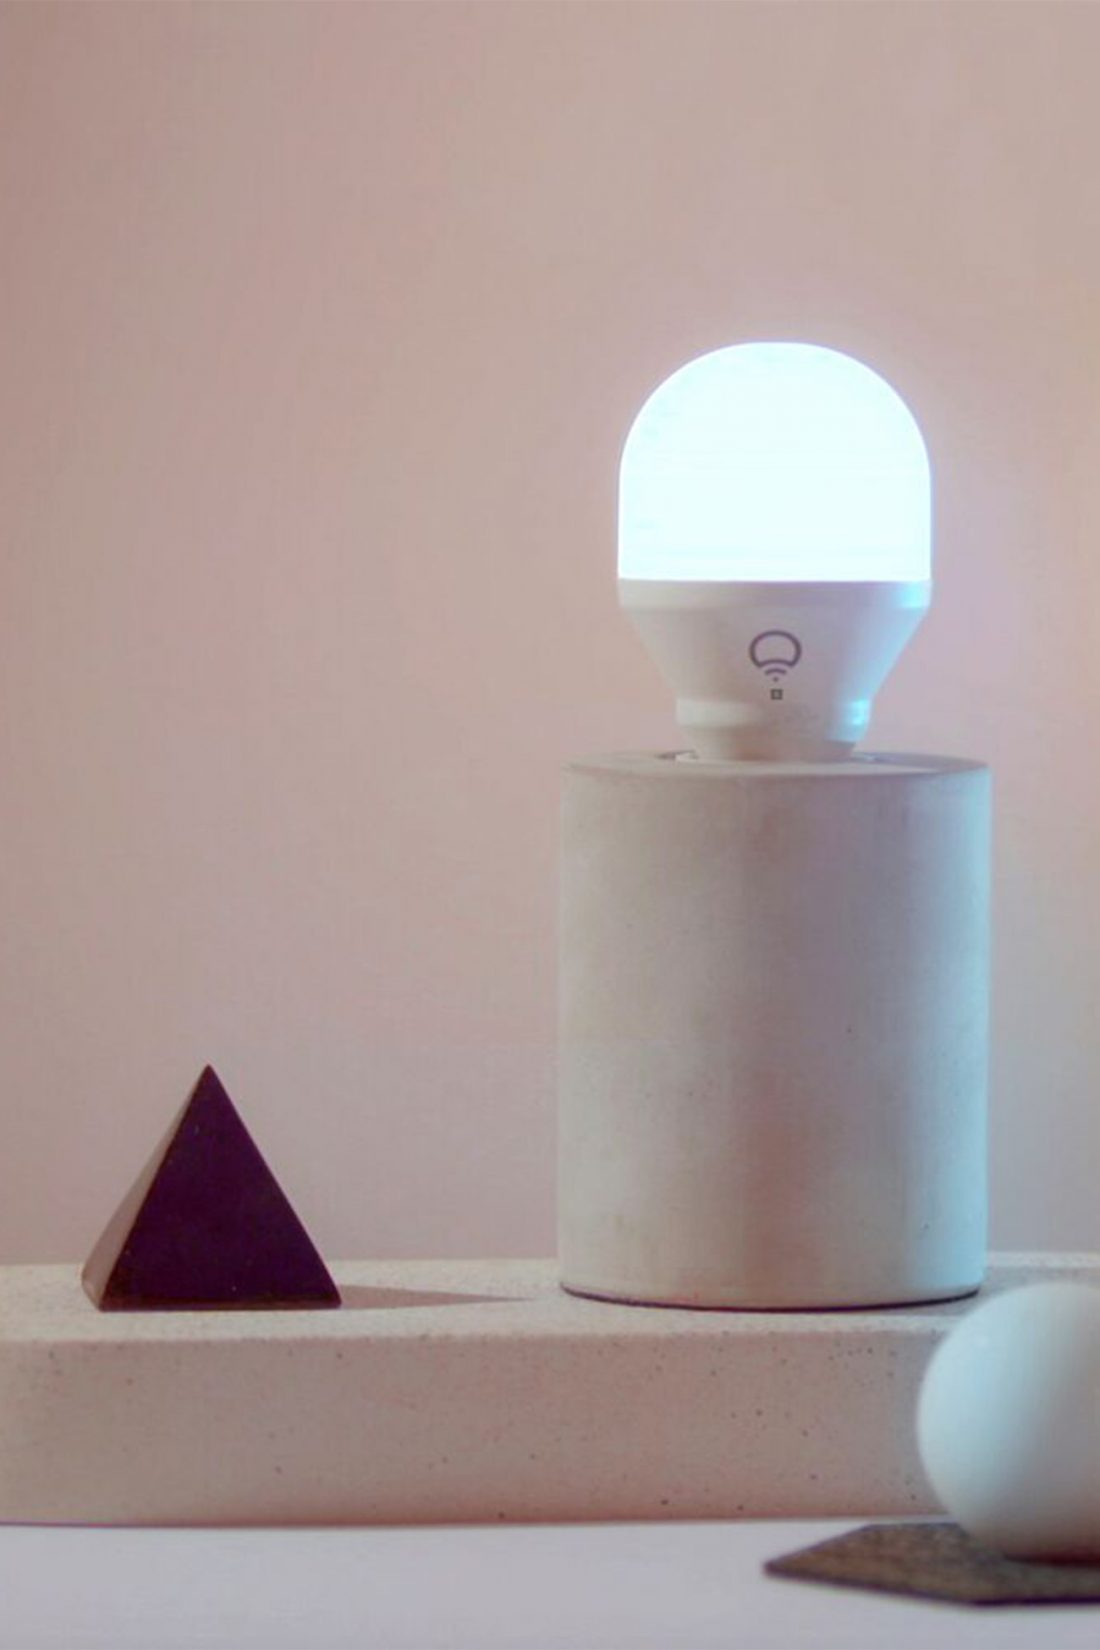 Lifx Mini Day to Dusk: Smart Lighting